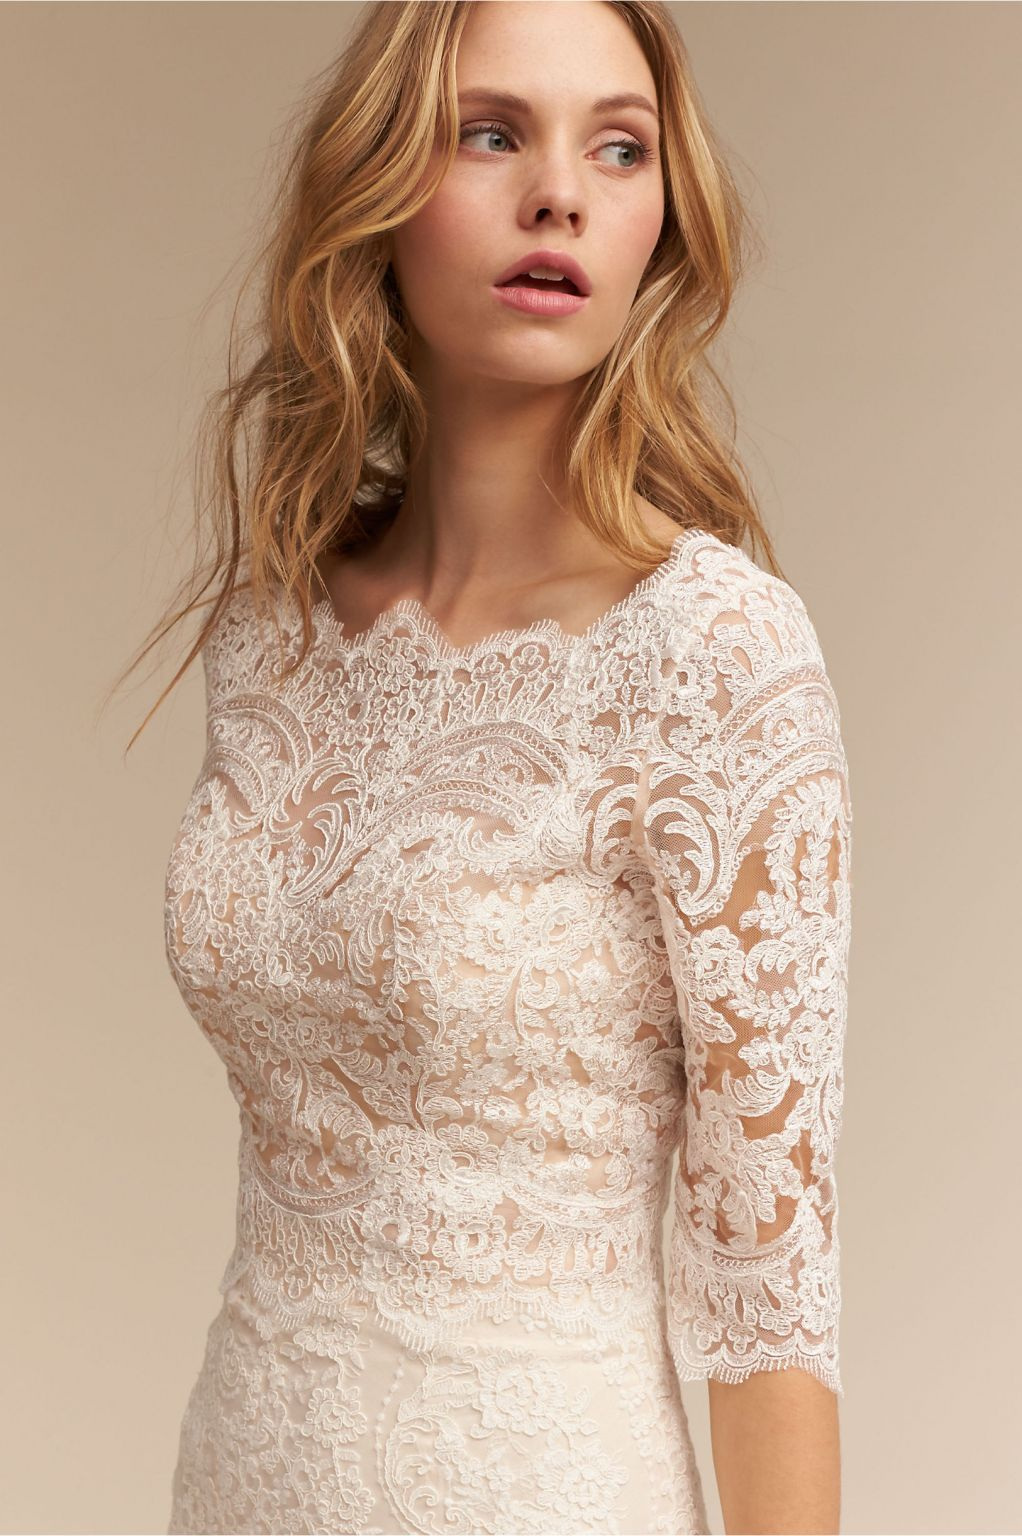 BHLDN Eddy K Capri Top